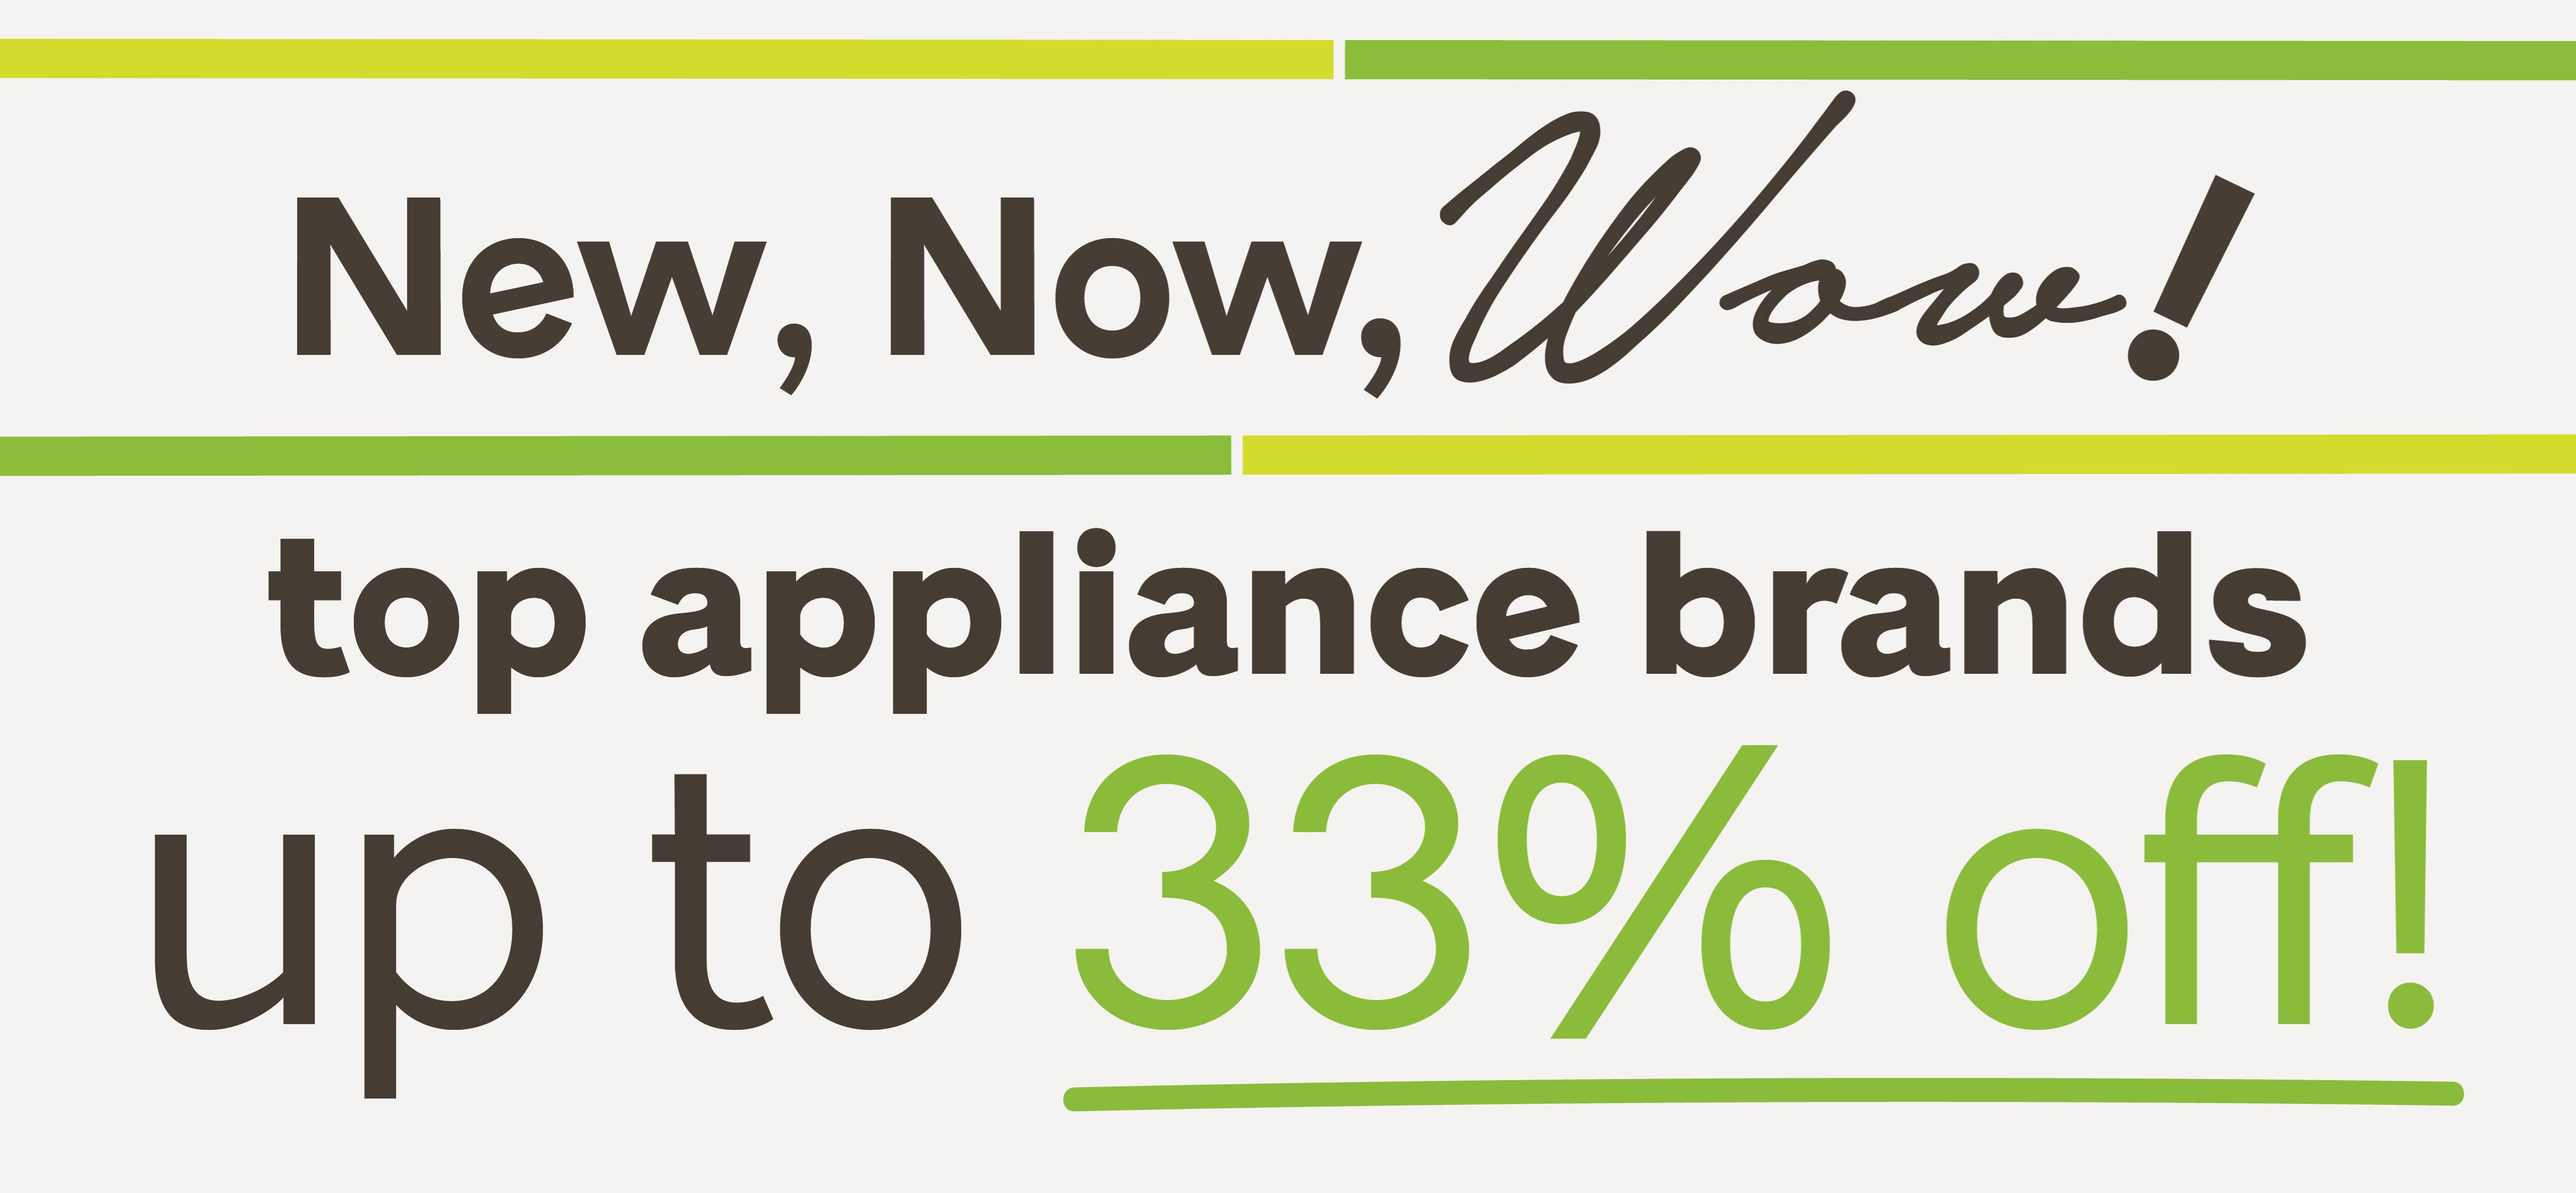 Furniture & ApplianceMart New Now Wow